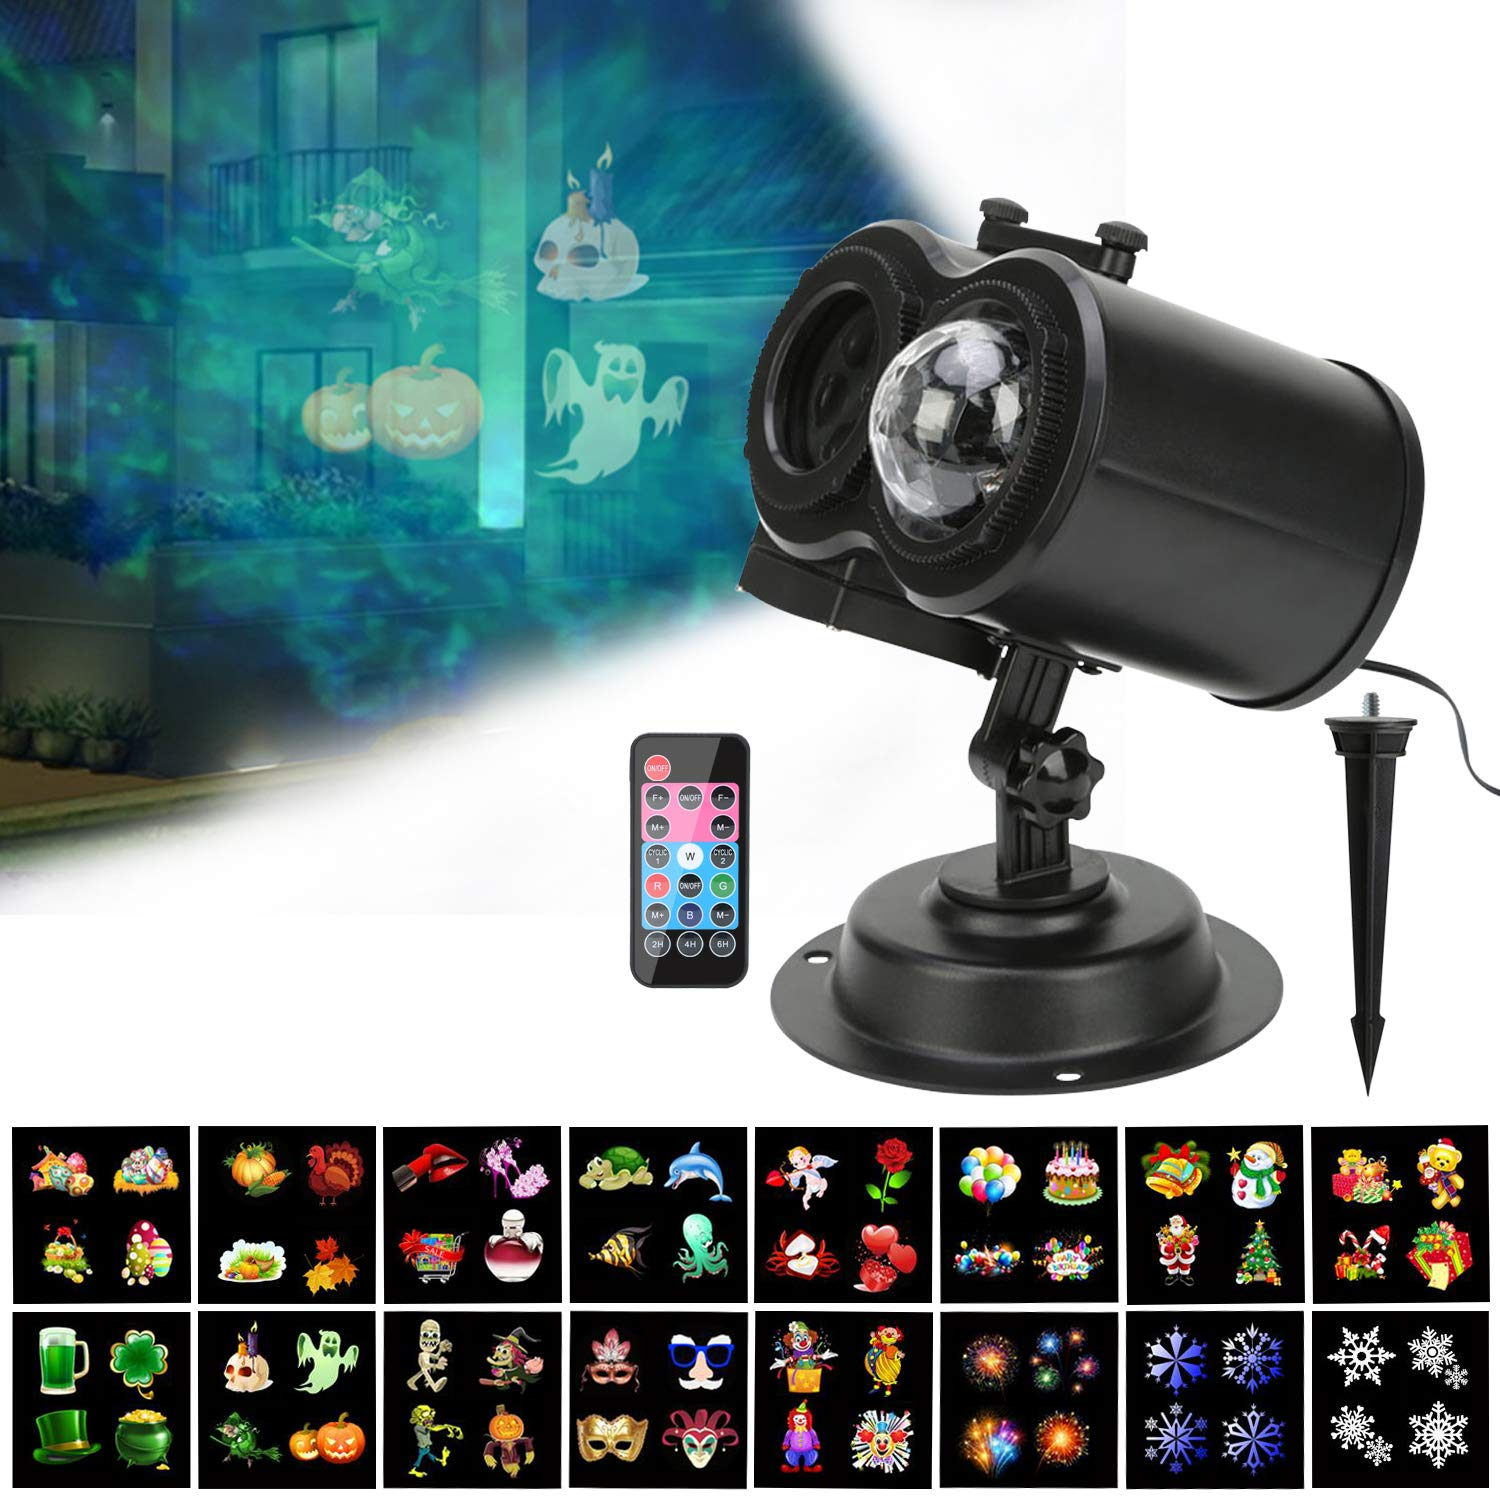 Htwon Halloween Projector Lights, 2018 New Christmas Water Wave Animated LED Light Projector with 12 Slides Patterns, Remote Control Landscape Decoration Lighting for Birthday Party (Ocean)